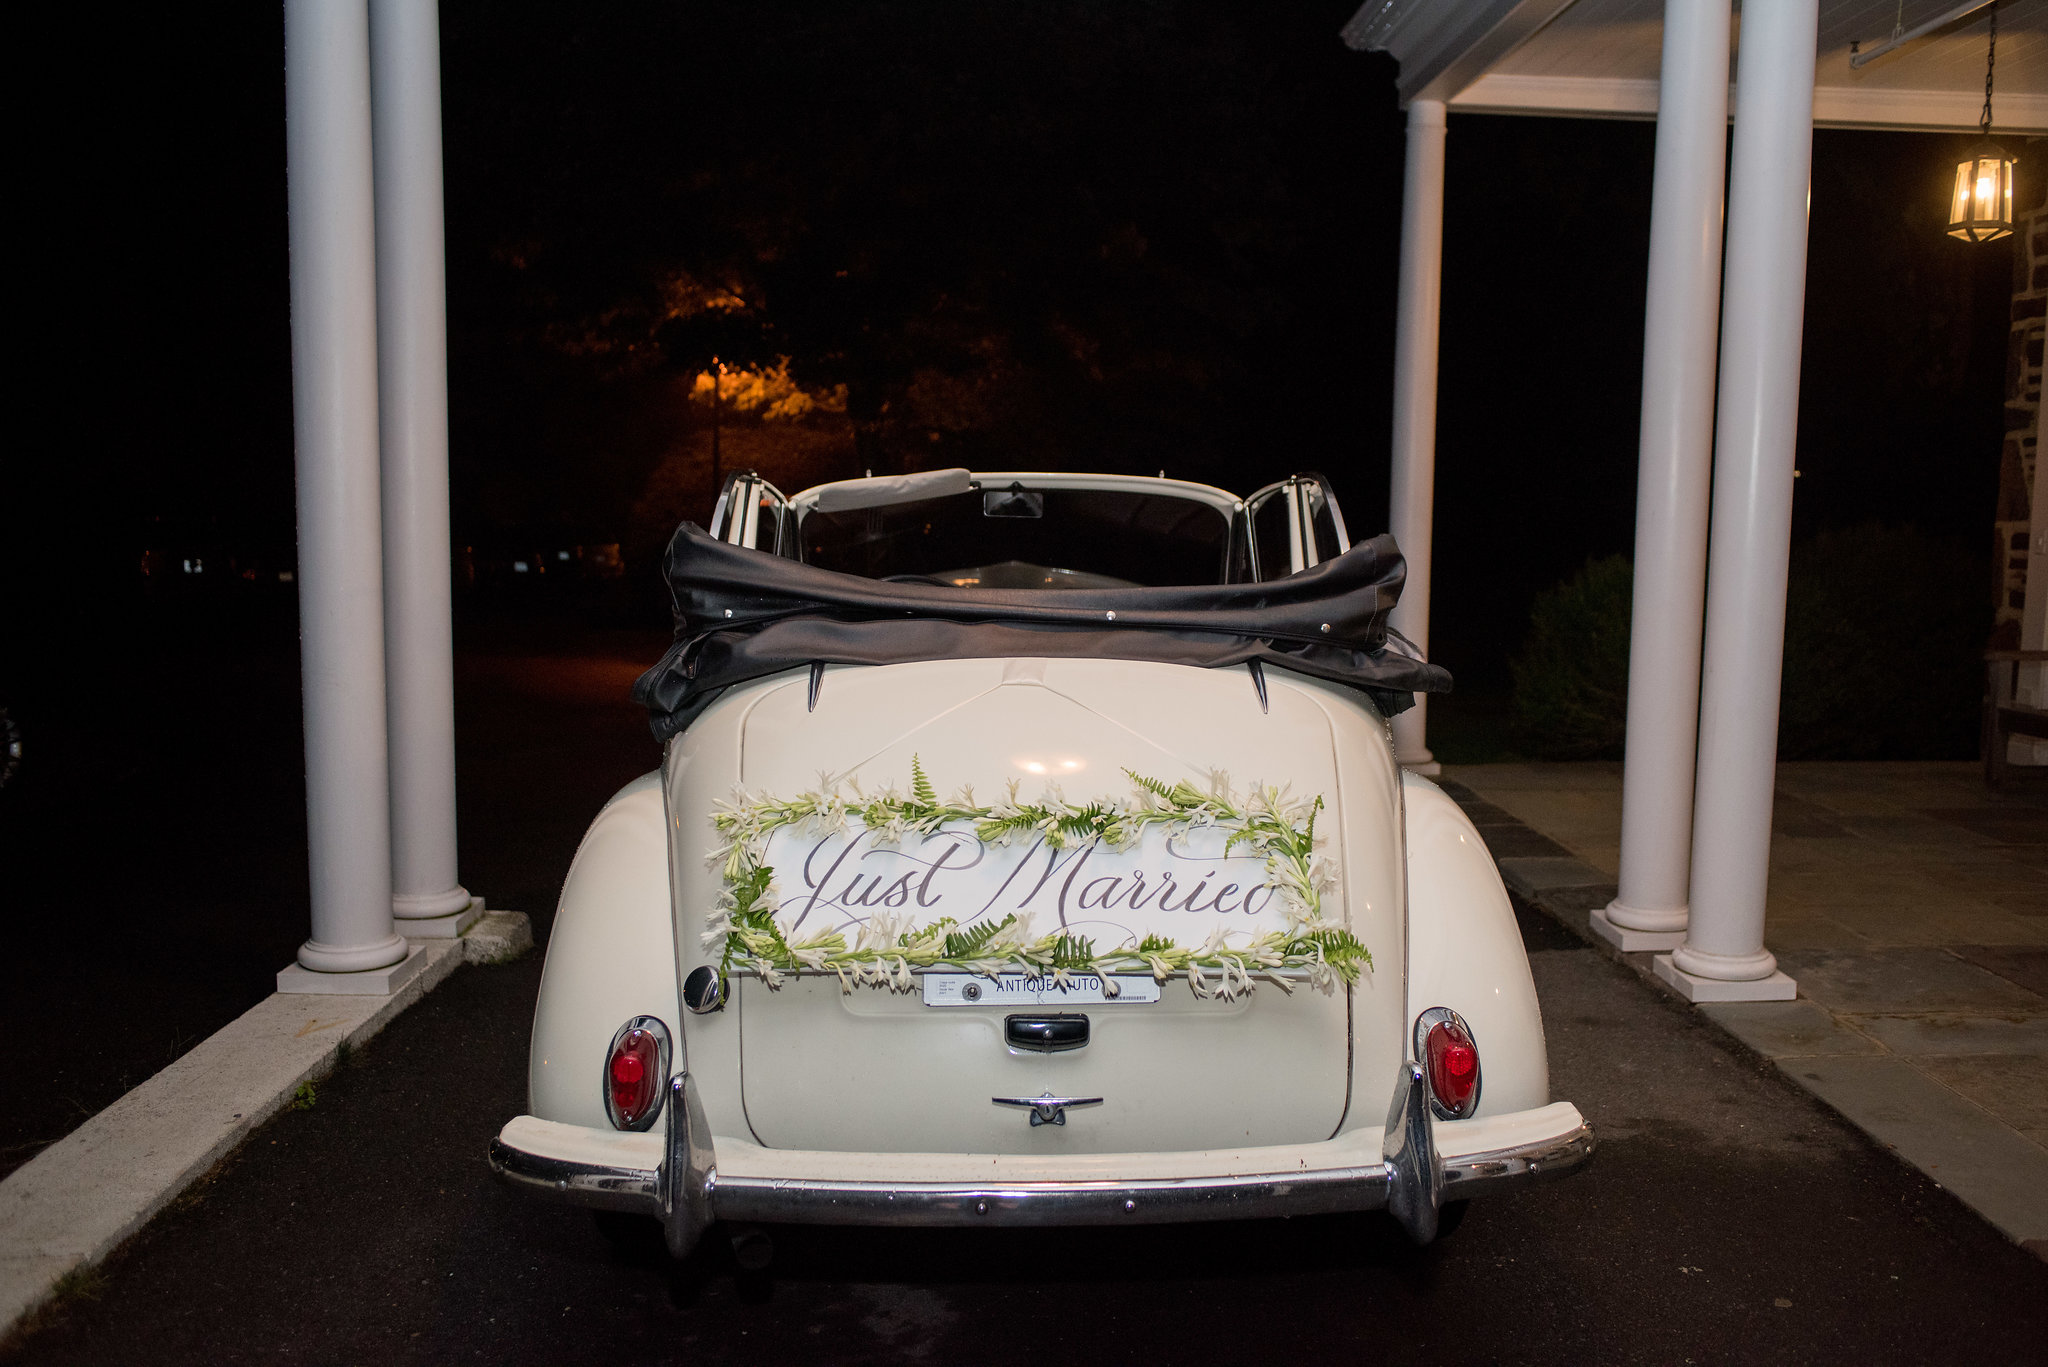 North Carolina Wedding, Events by Reagan, Destination Wedding Planner, Just married car